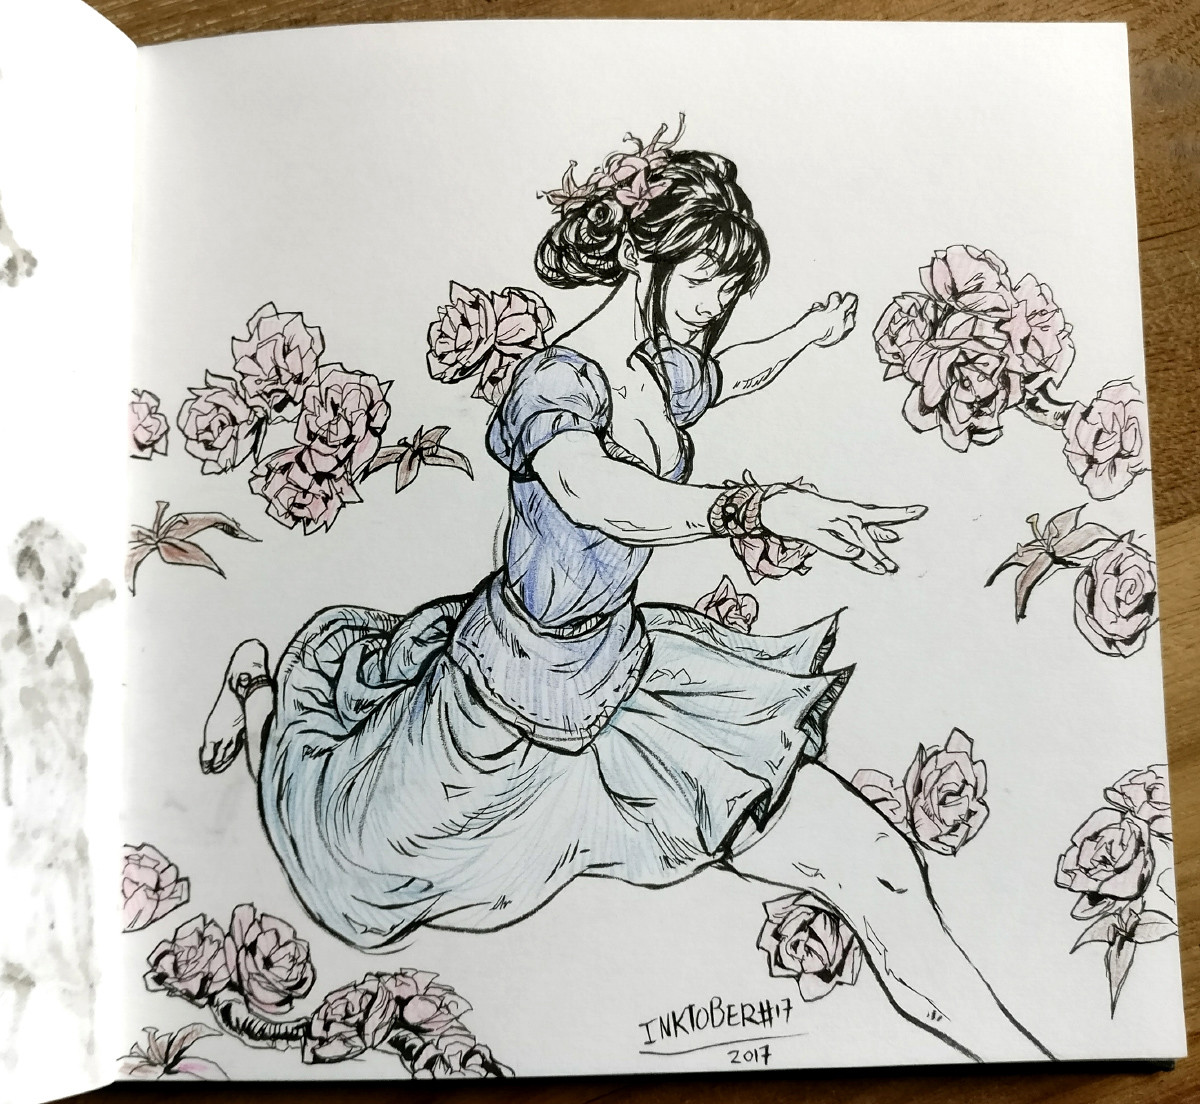 Inktober day 17: Graceful